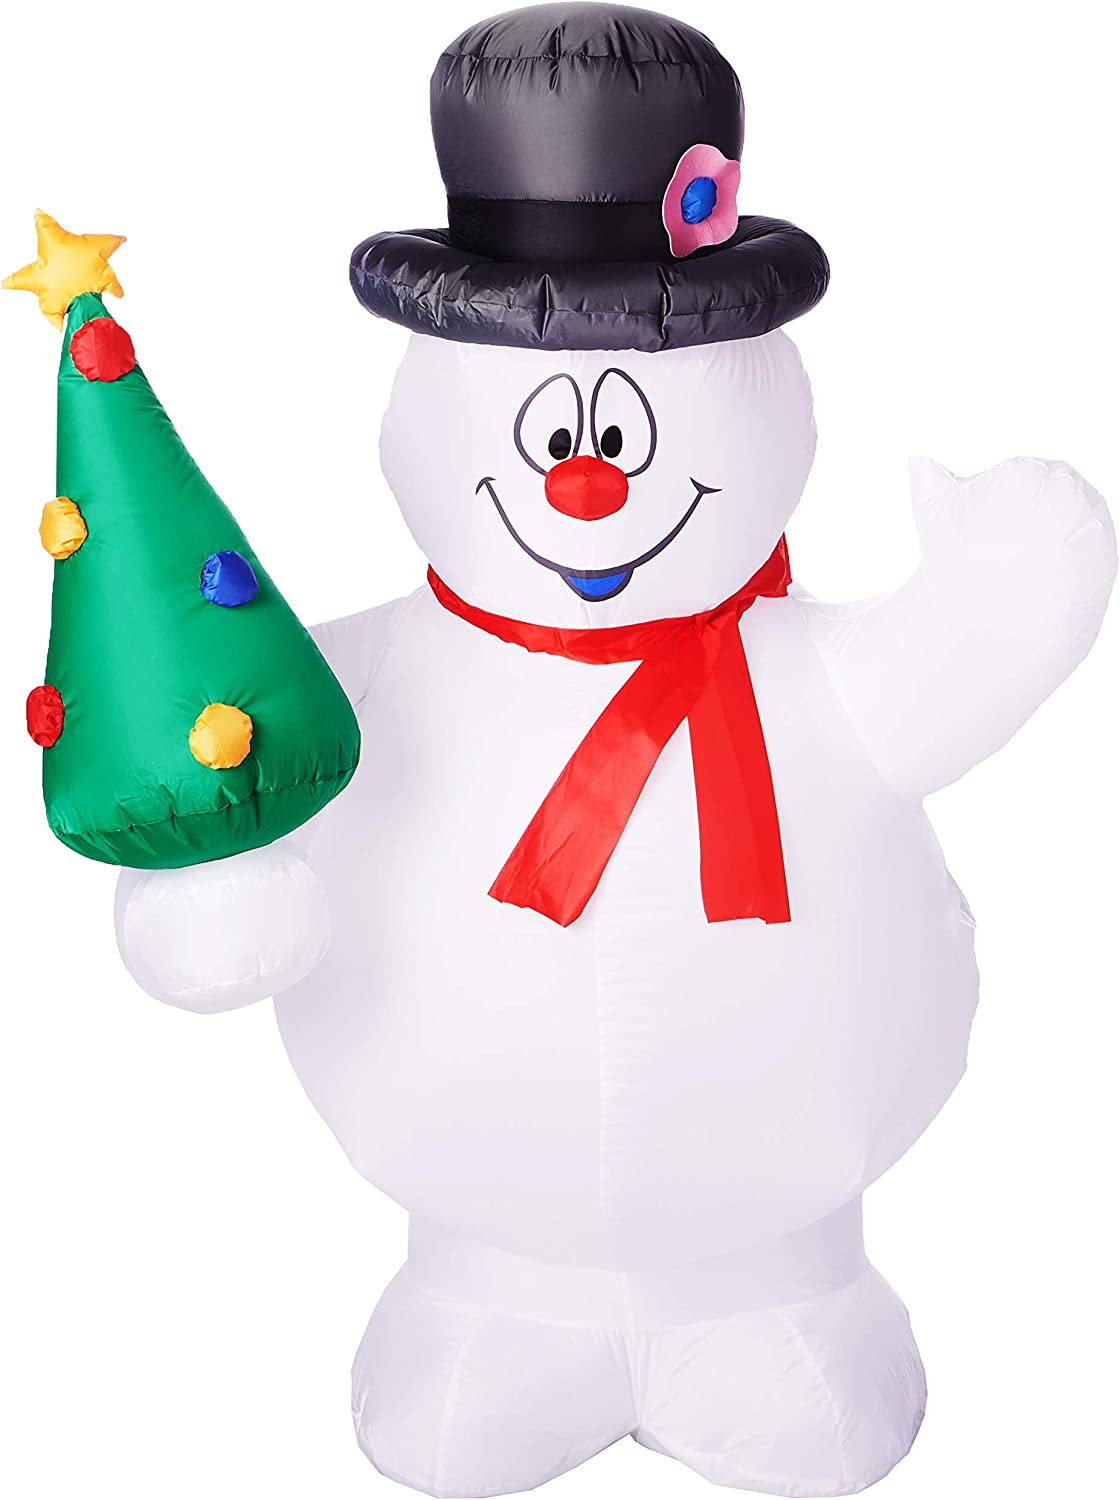 Gemmy Airblown Christmas Indoor Outdoor Frosty The Snowman Holding a Christmas Tree 5Ft. Tall